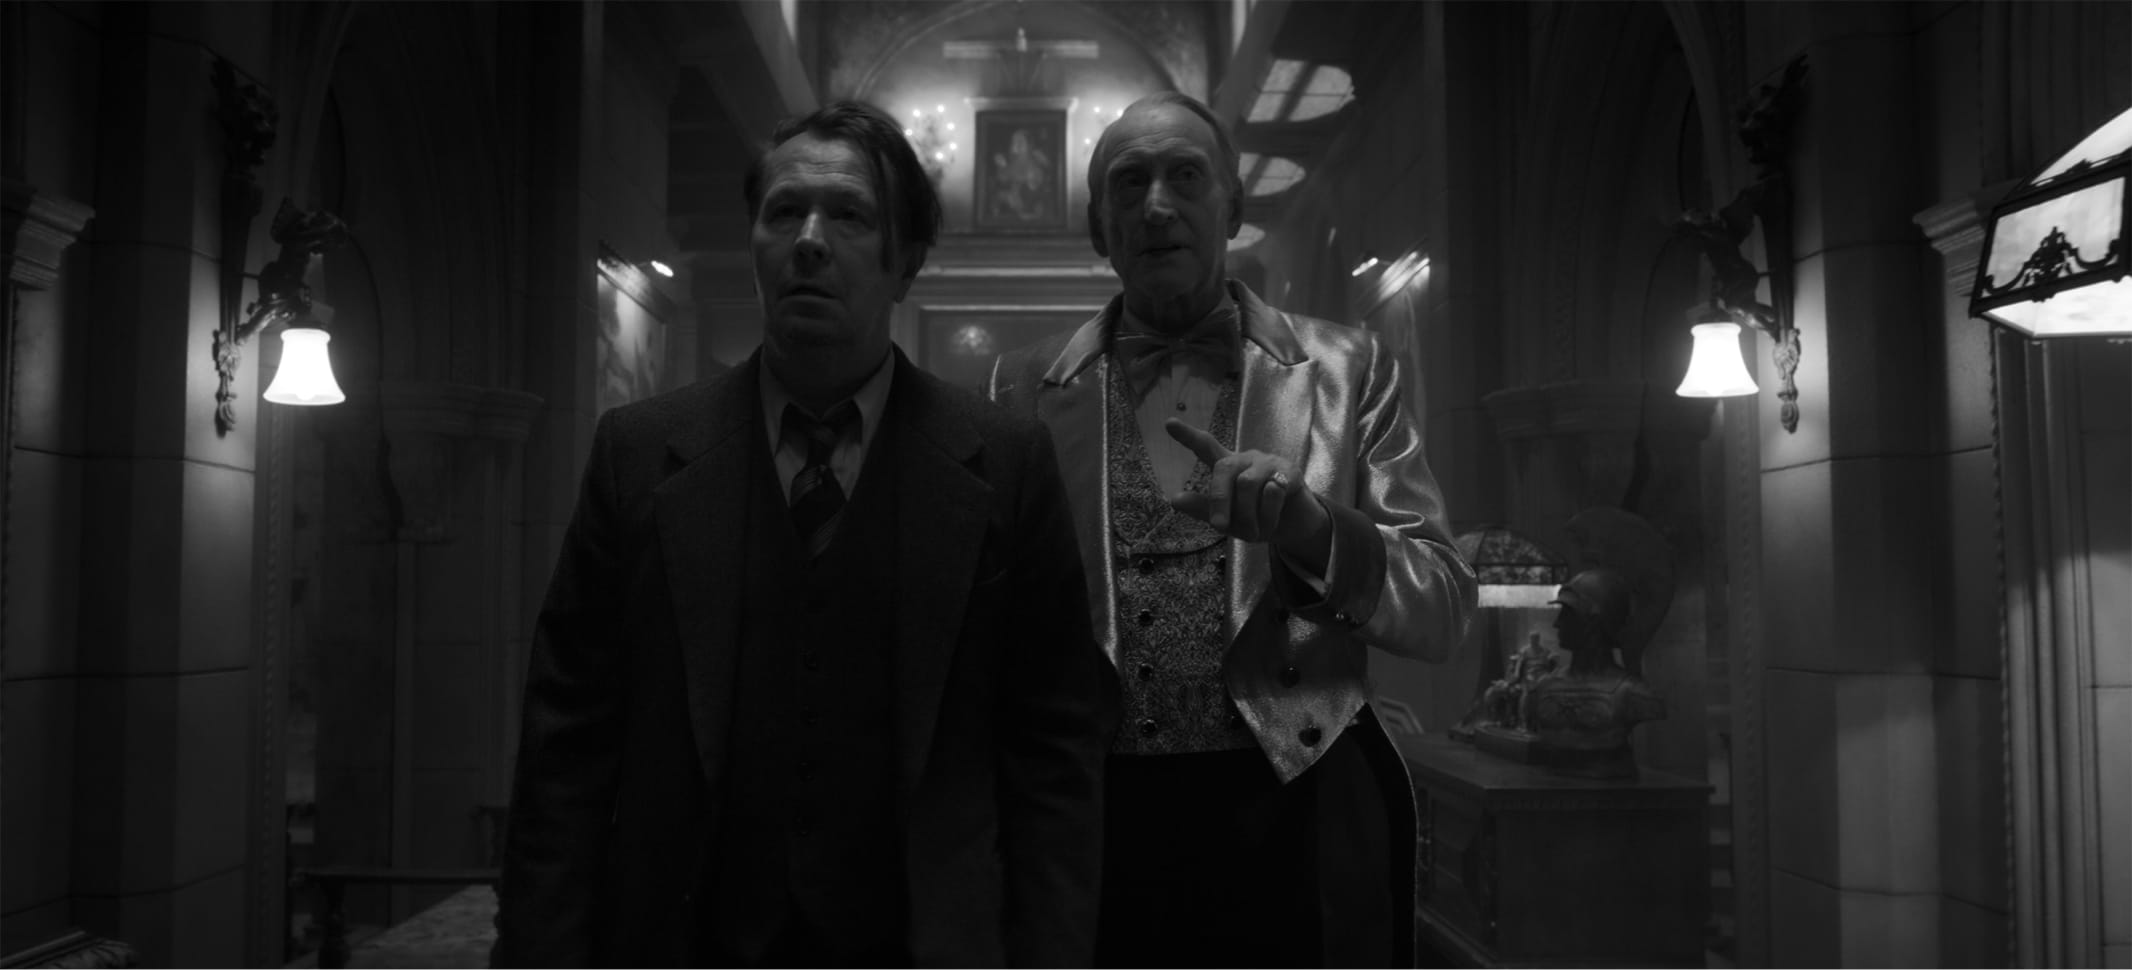 Mank and Hearst, in that bronze get-up, wander the halls of a dusky Hearst Castle in a black-and-white still from the film. The light catches Hearst's jacket.